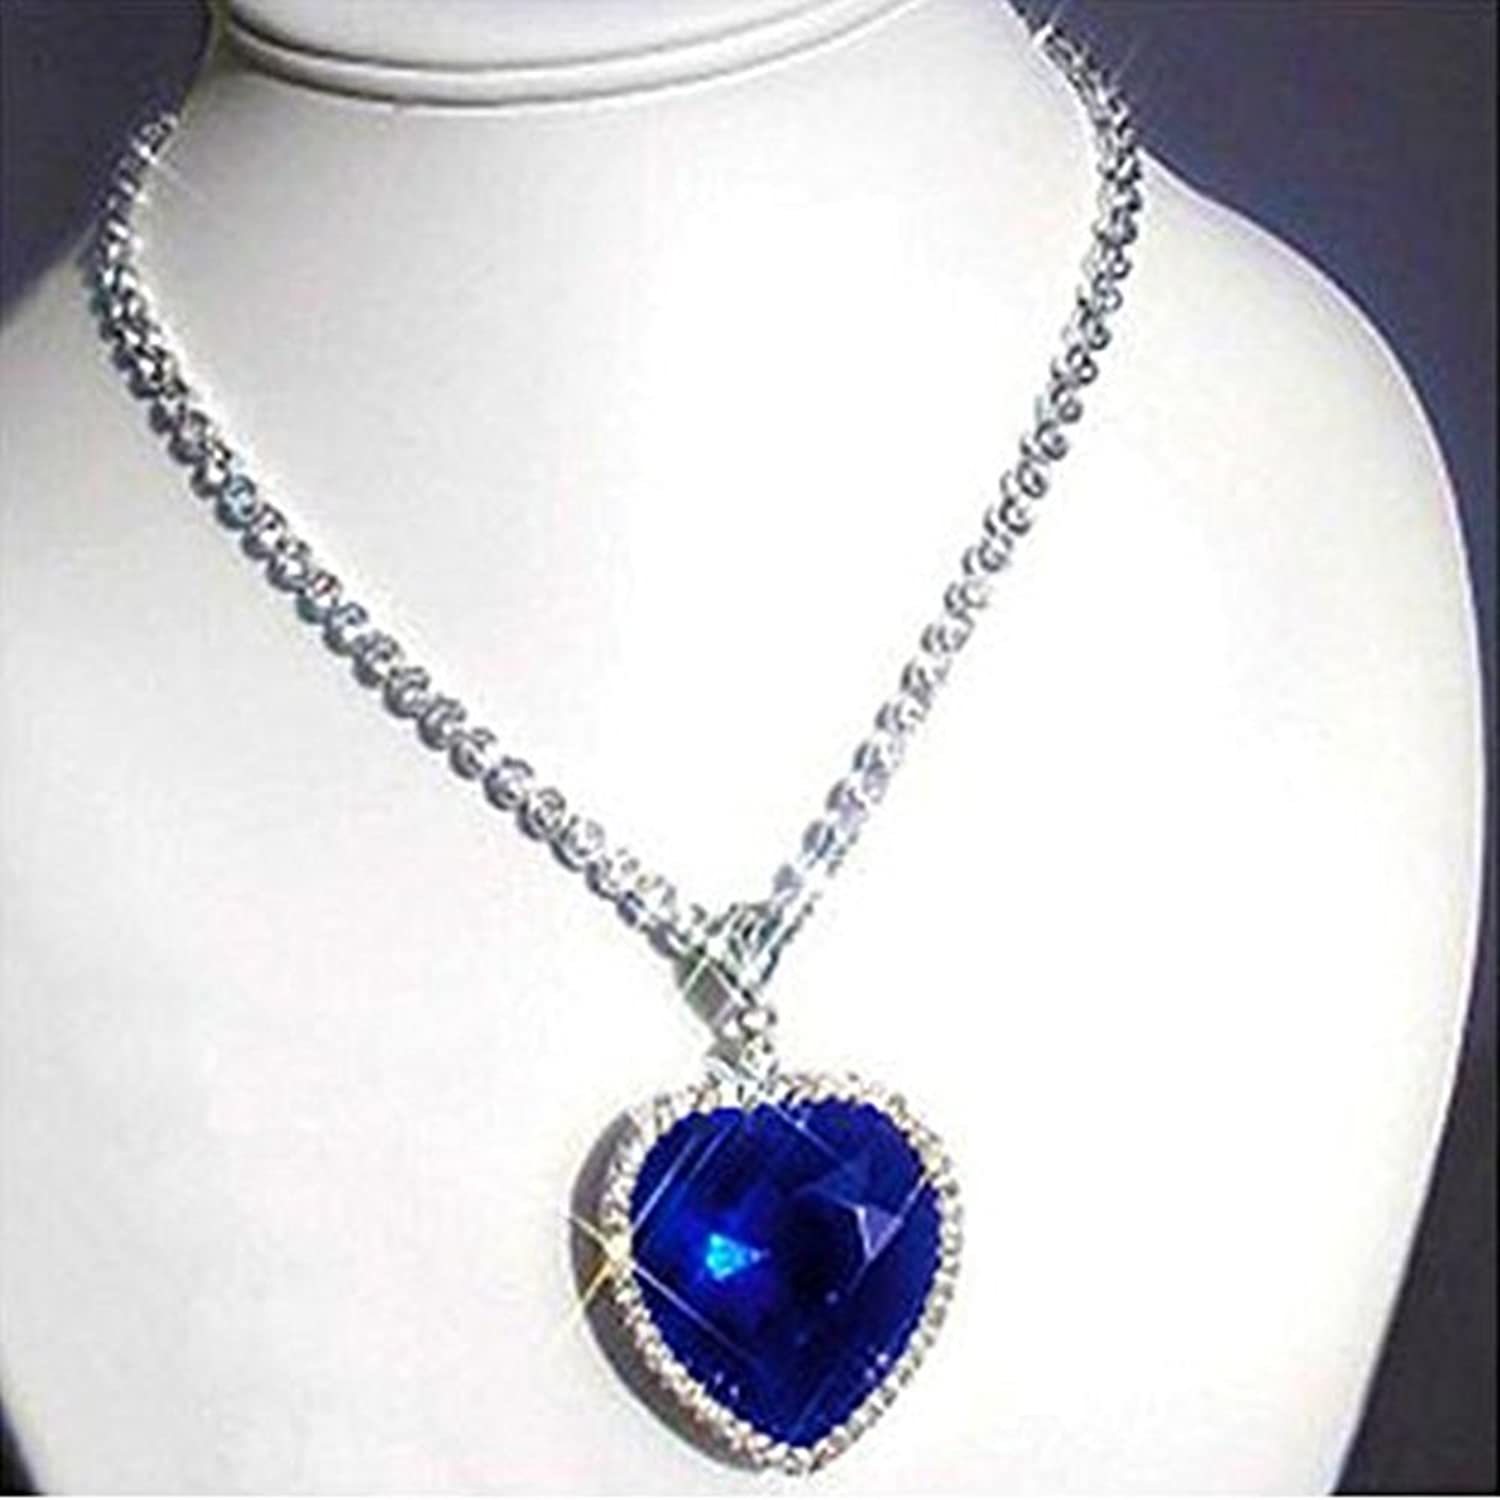 women in amazon at dp ocean blue caratcube for ctc sapphire low pendant store online heart the real crystal buy necklace of titanic india austrian jewellery prices